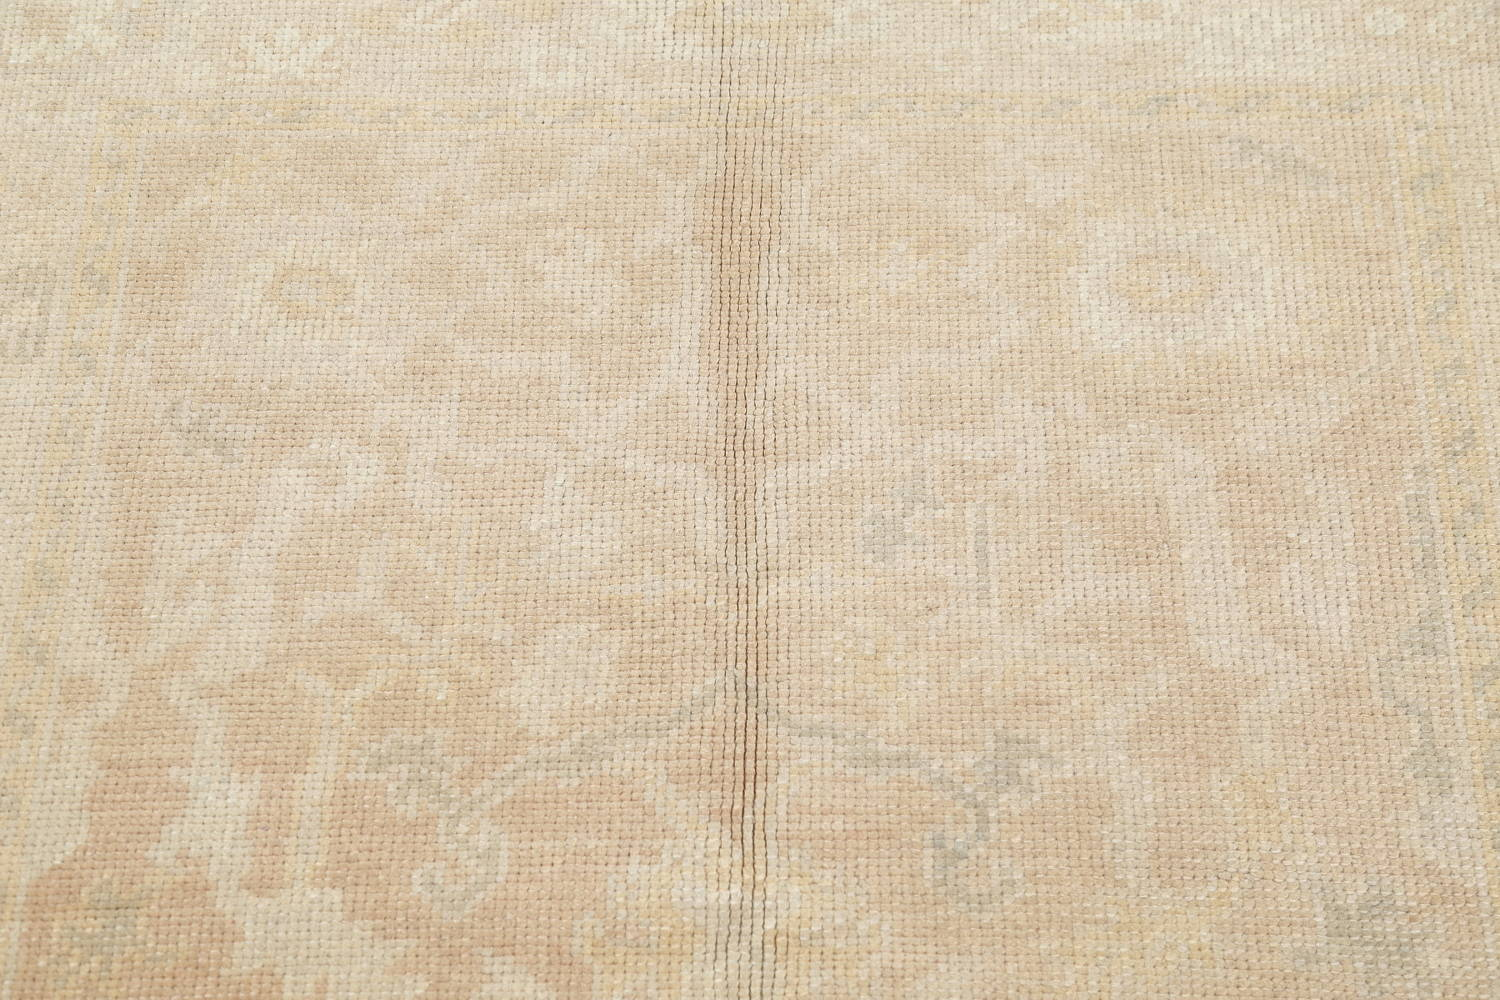 Vegetable Dye Muted Gold Oushak Turkish Hand-Knotted Area Rug 4x5 image 9